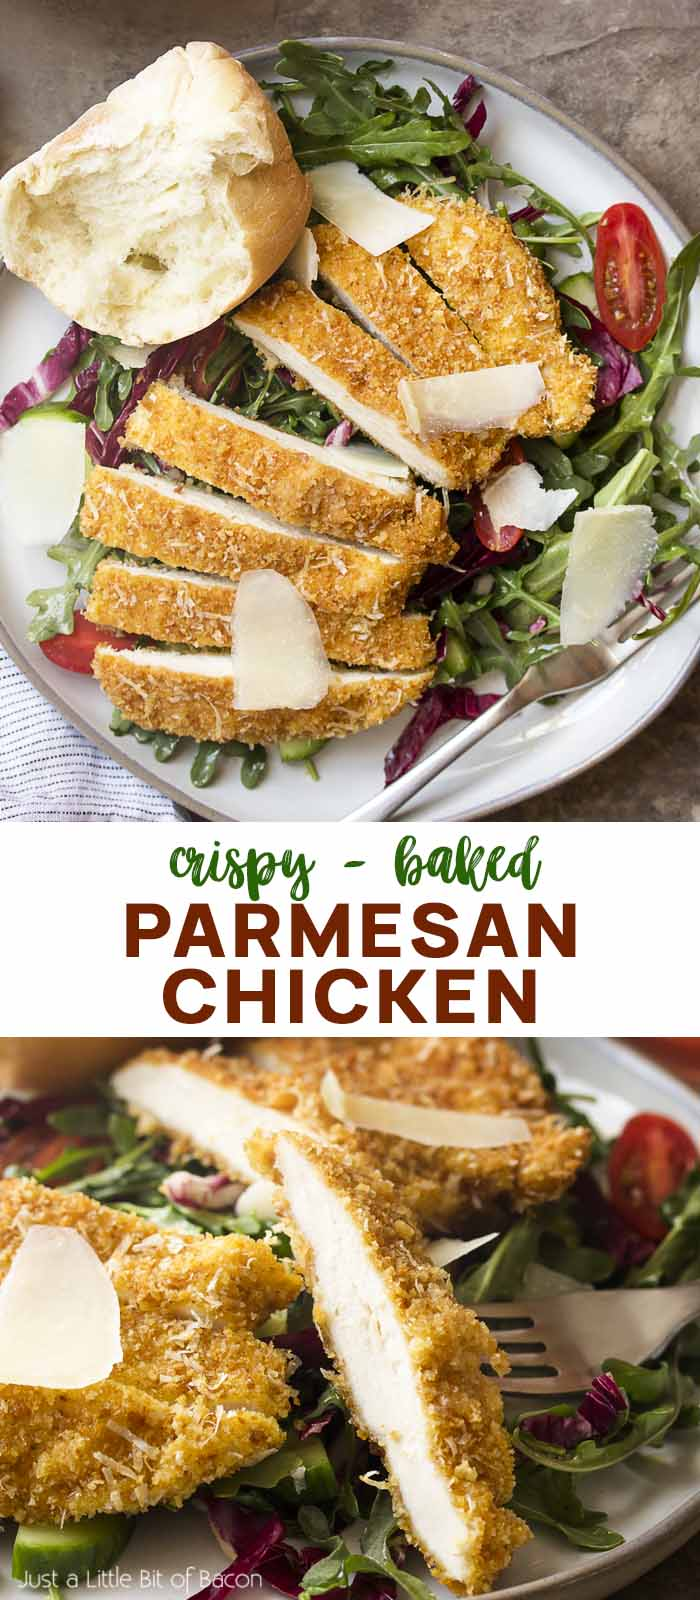 Two views of chicken over salad with text overlay - Parmesan Chicken.